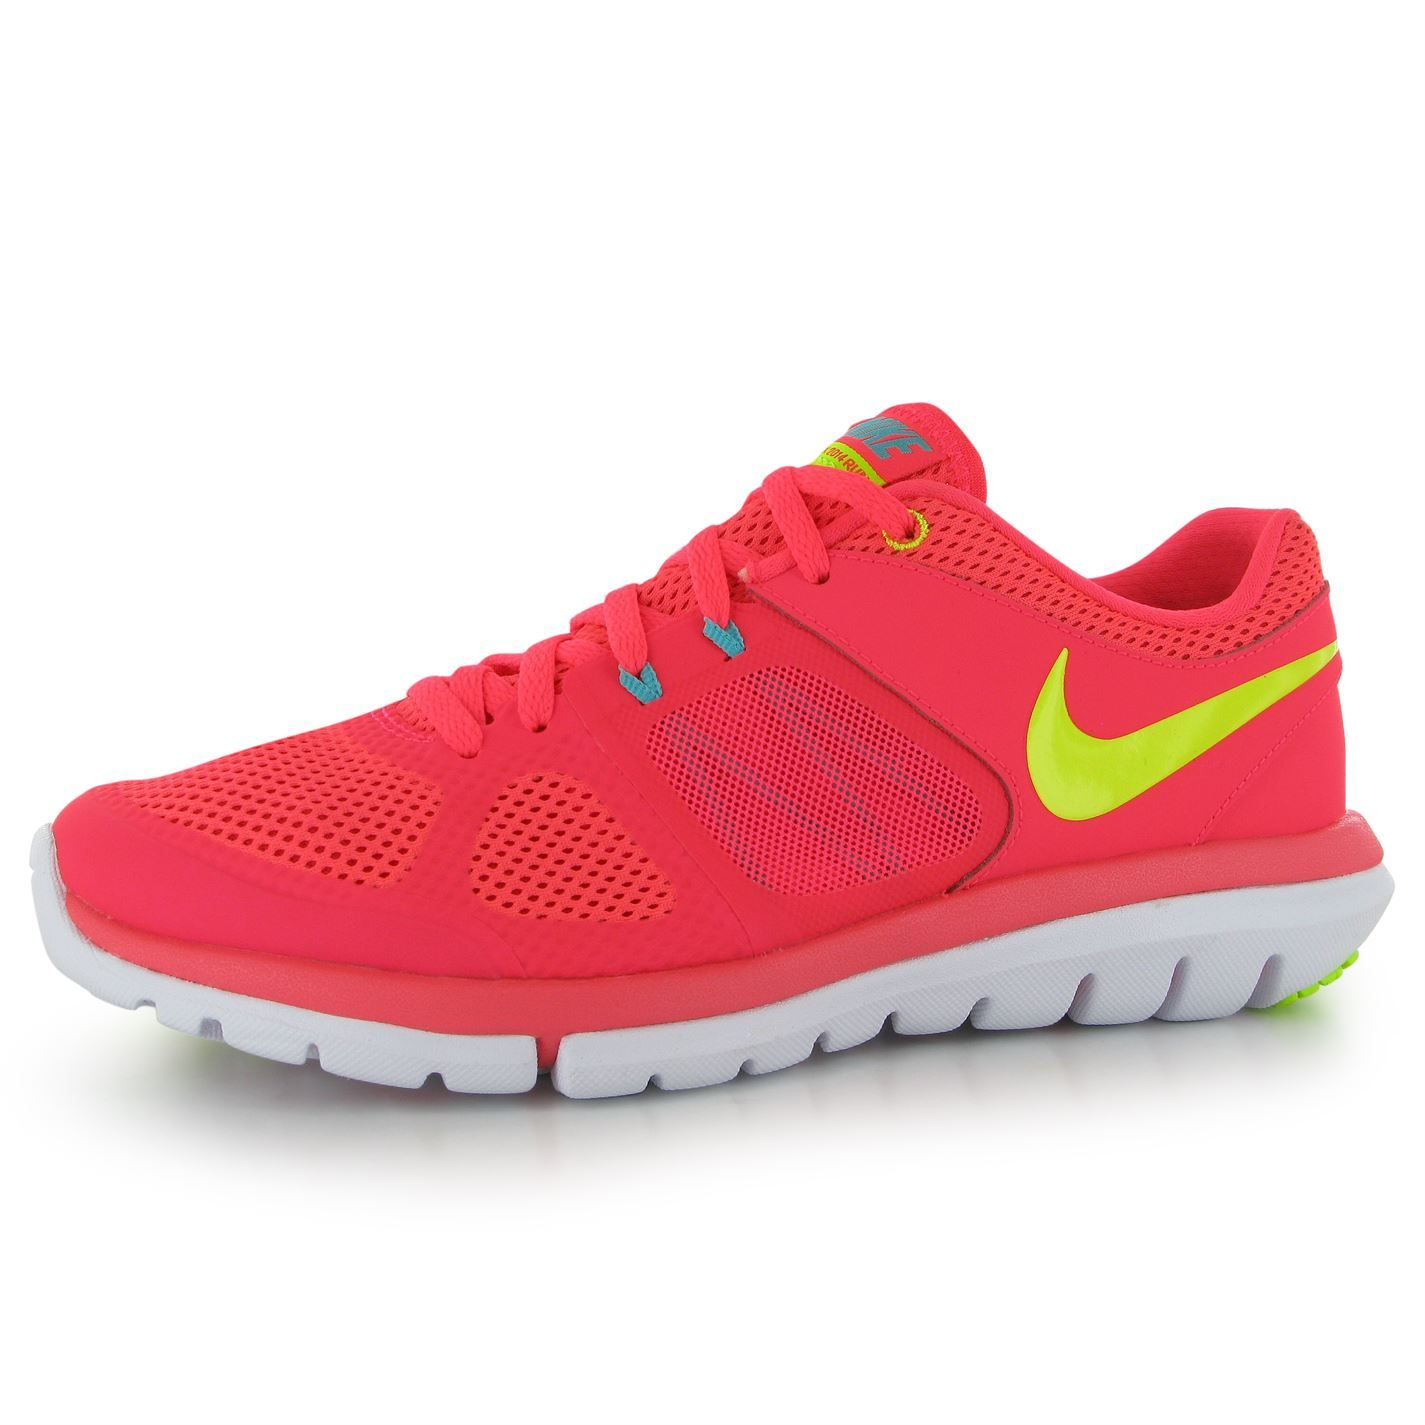 Nike Legend React 2 Shield Trainers Ladies Running shoes